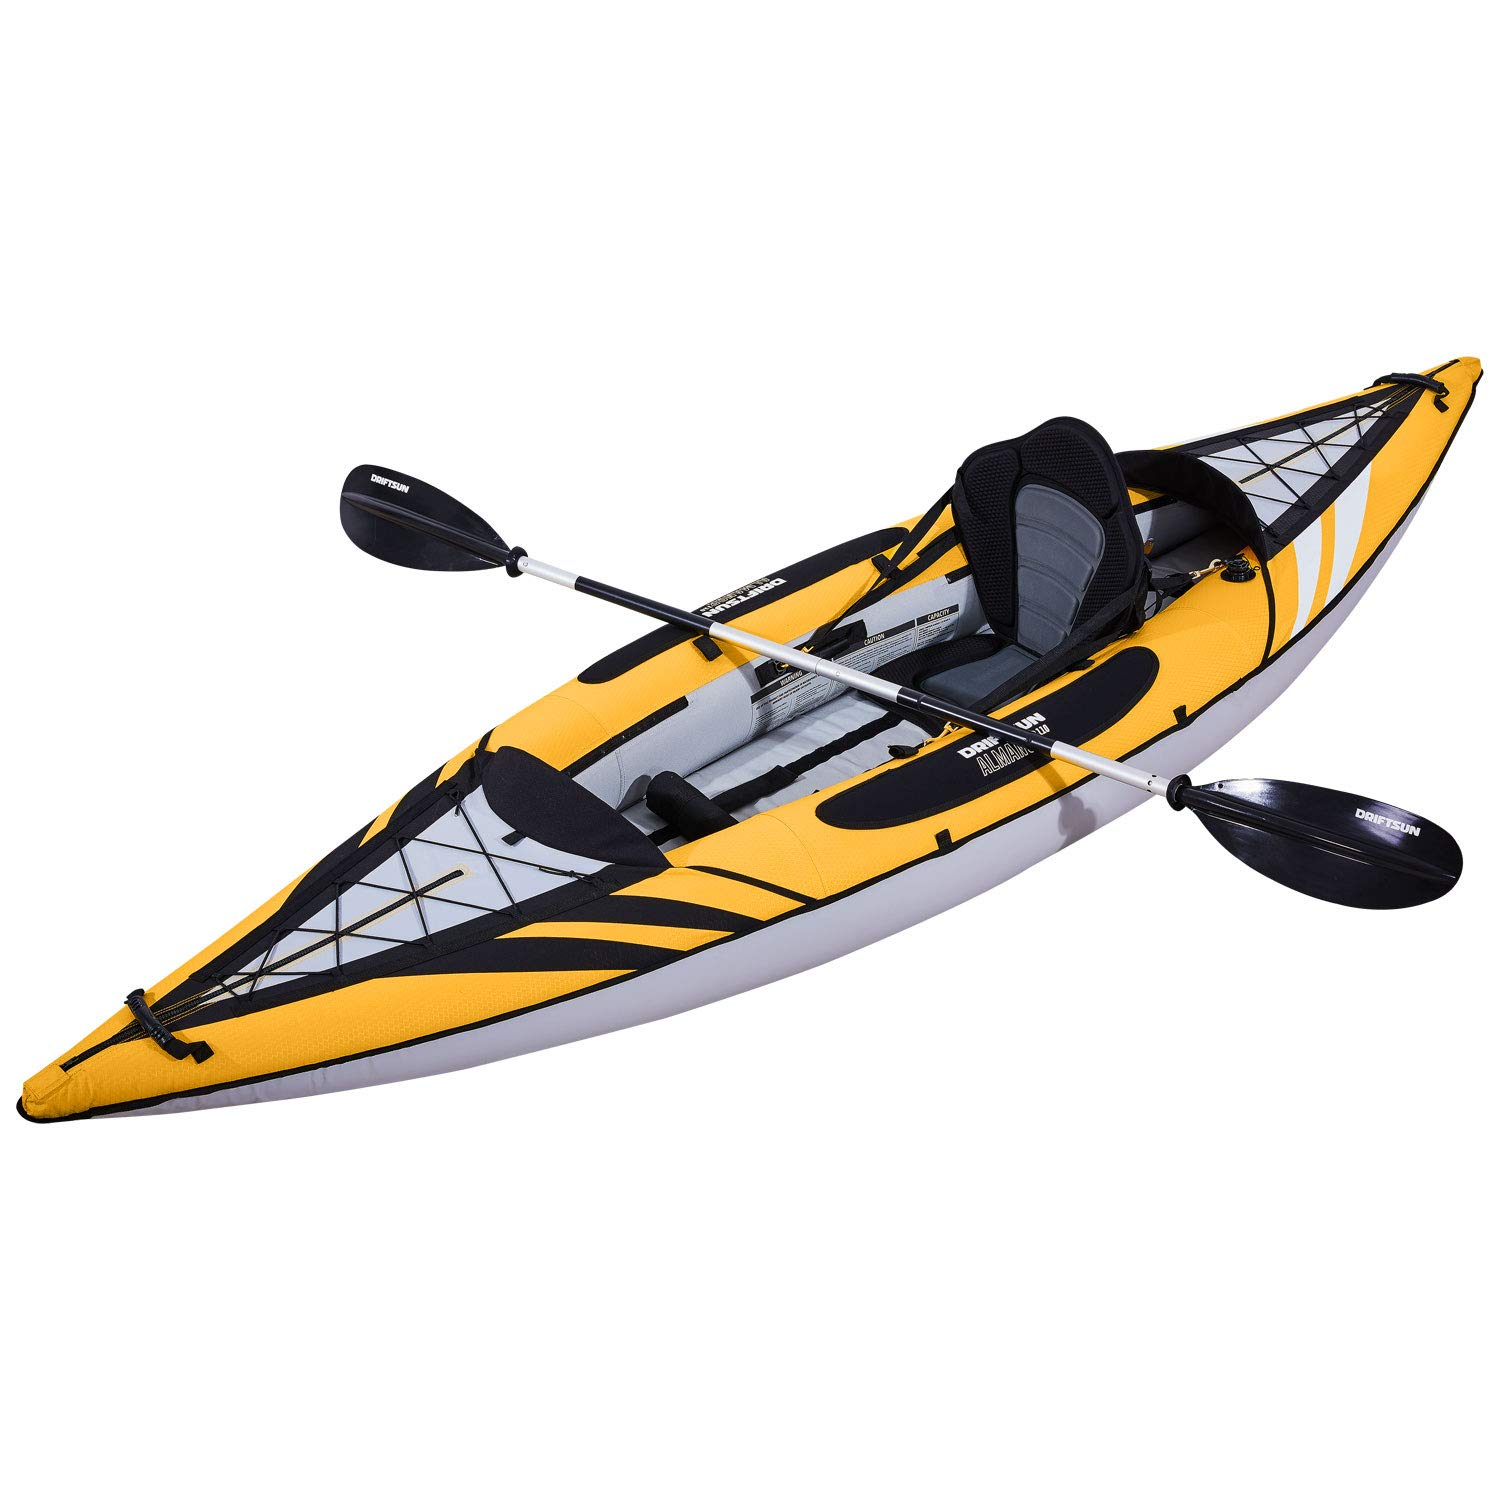 Amazon.com: Driftsun Almanor 110 - Kayak hinchable de ...